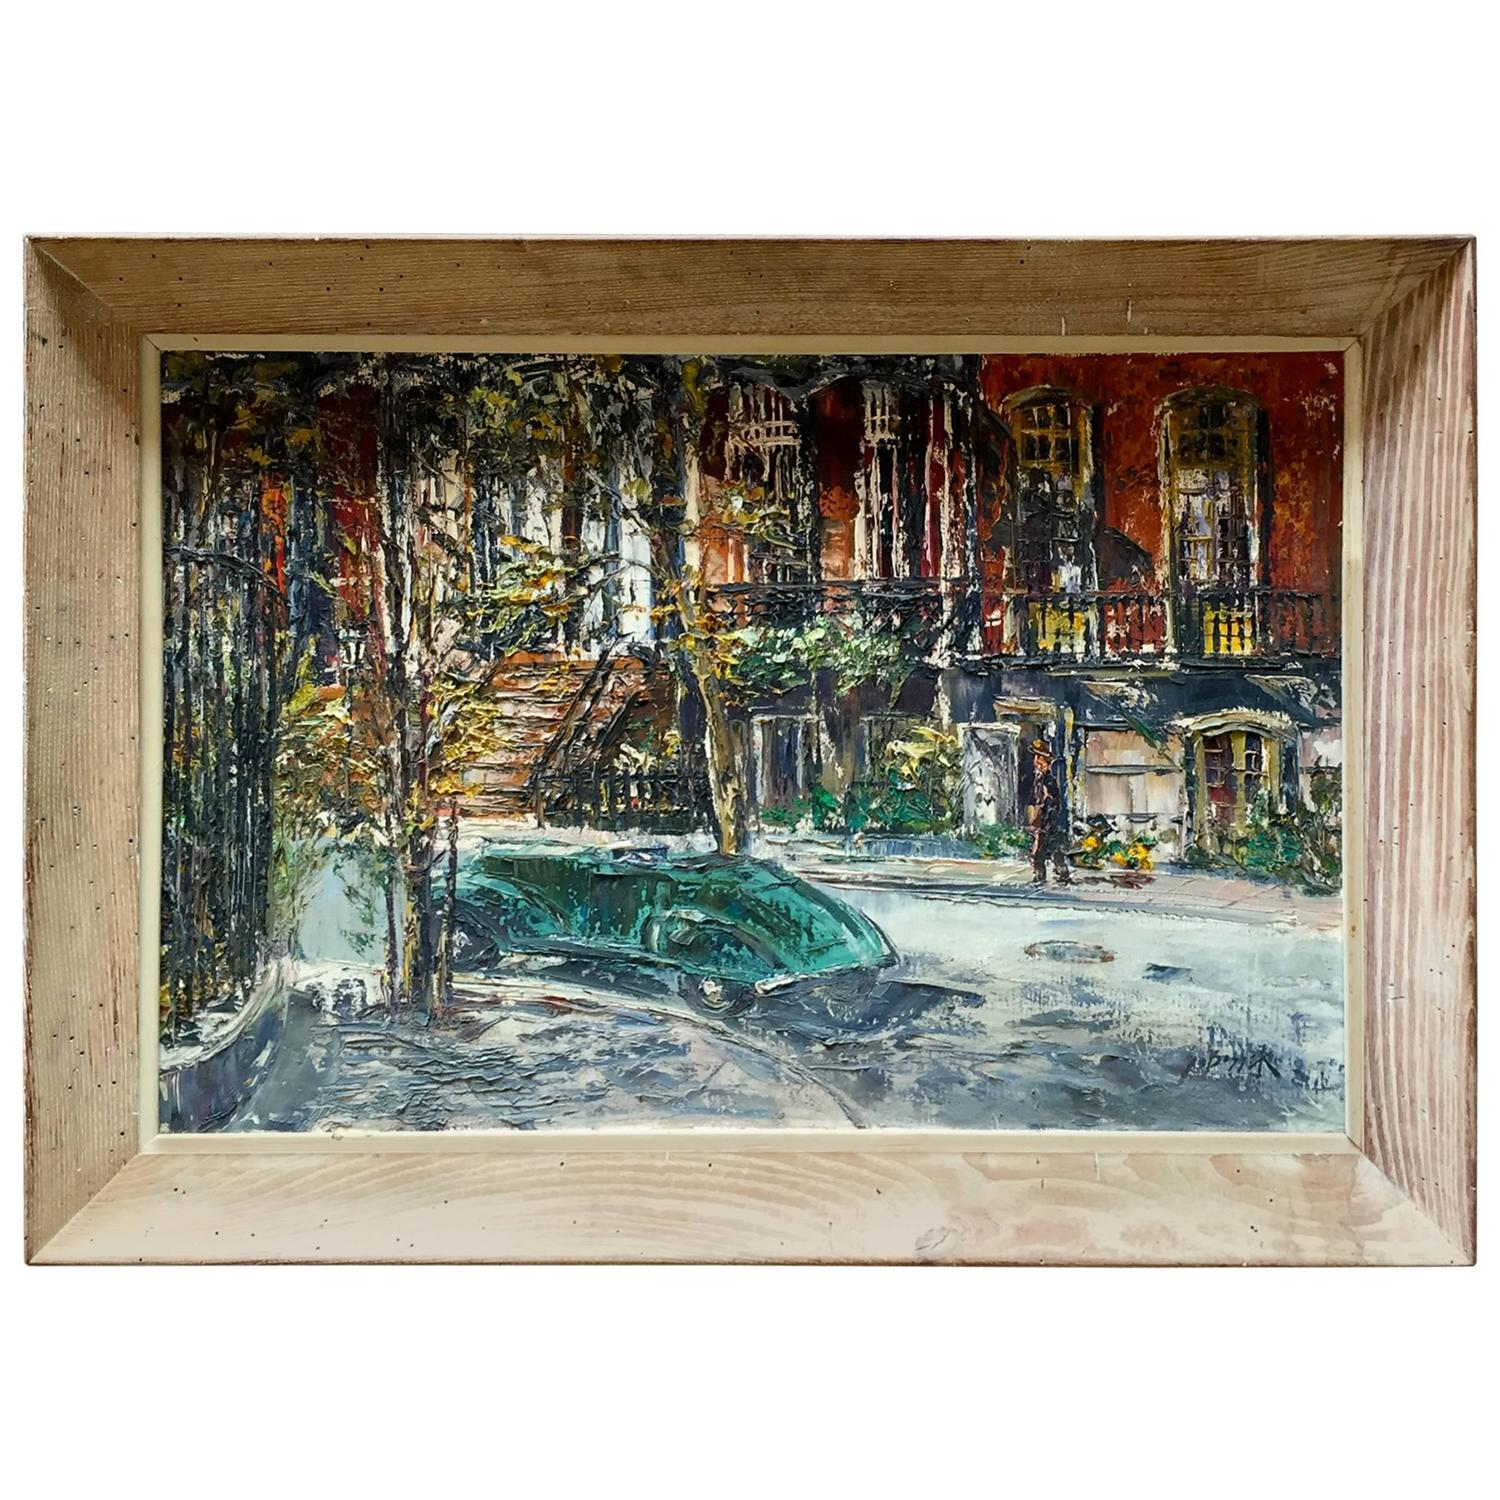 1940s Paintings 352 For Sale at 1stdibs